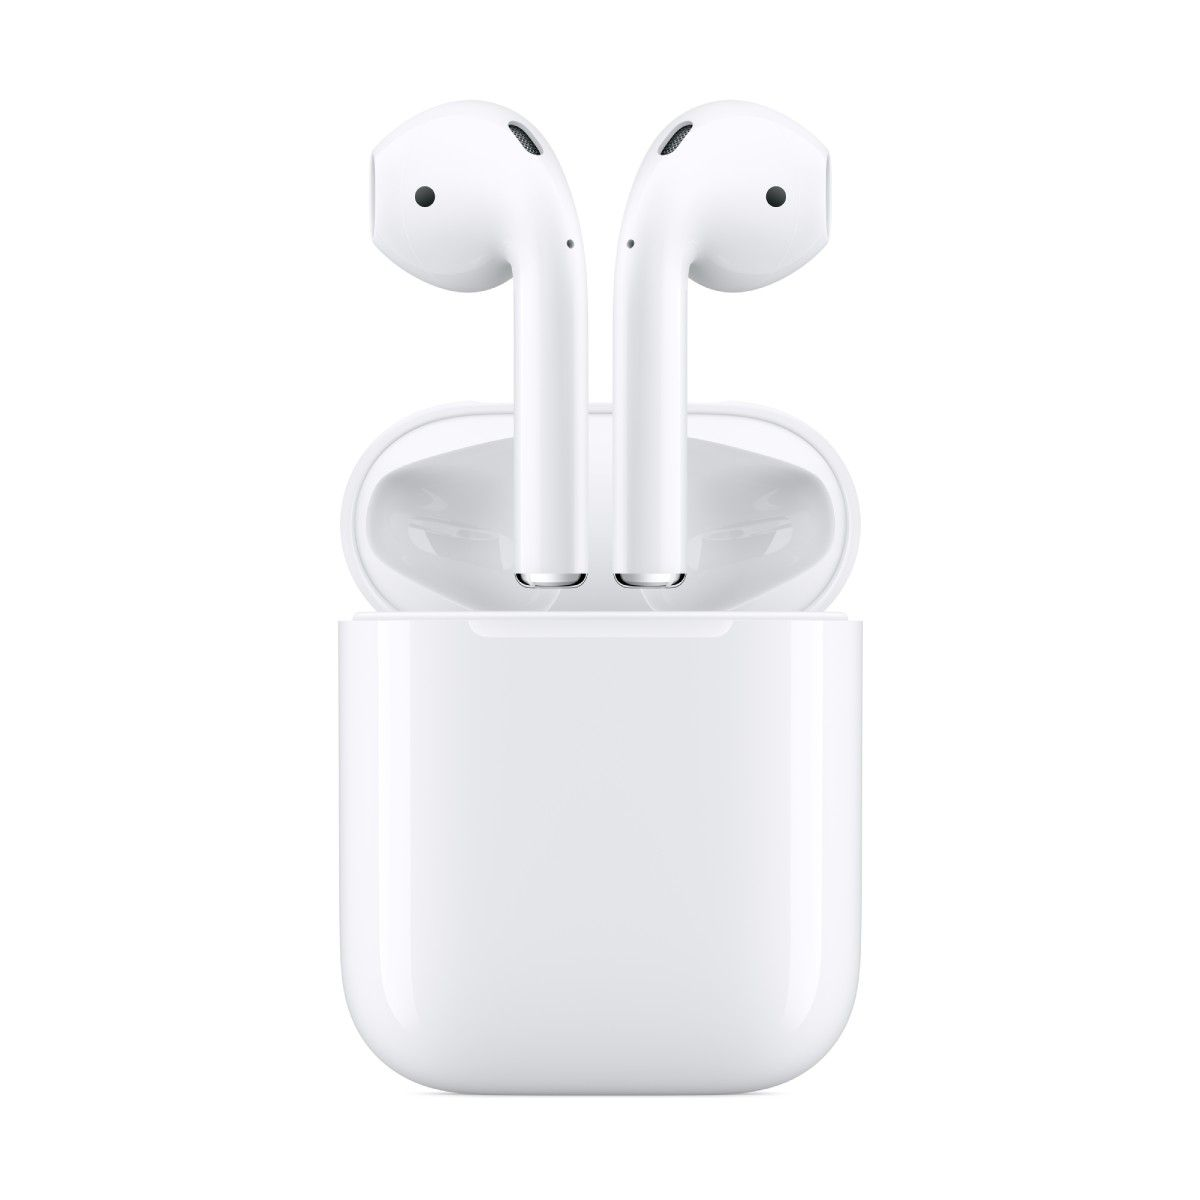 buy AirPods 2 with Charging Case online in india best prices